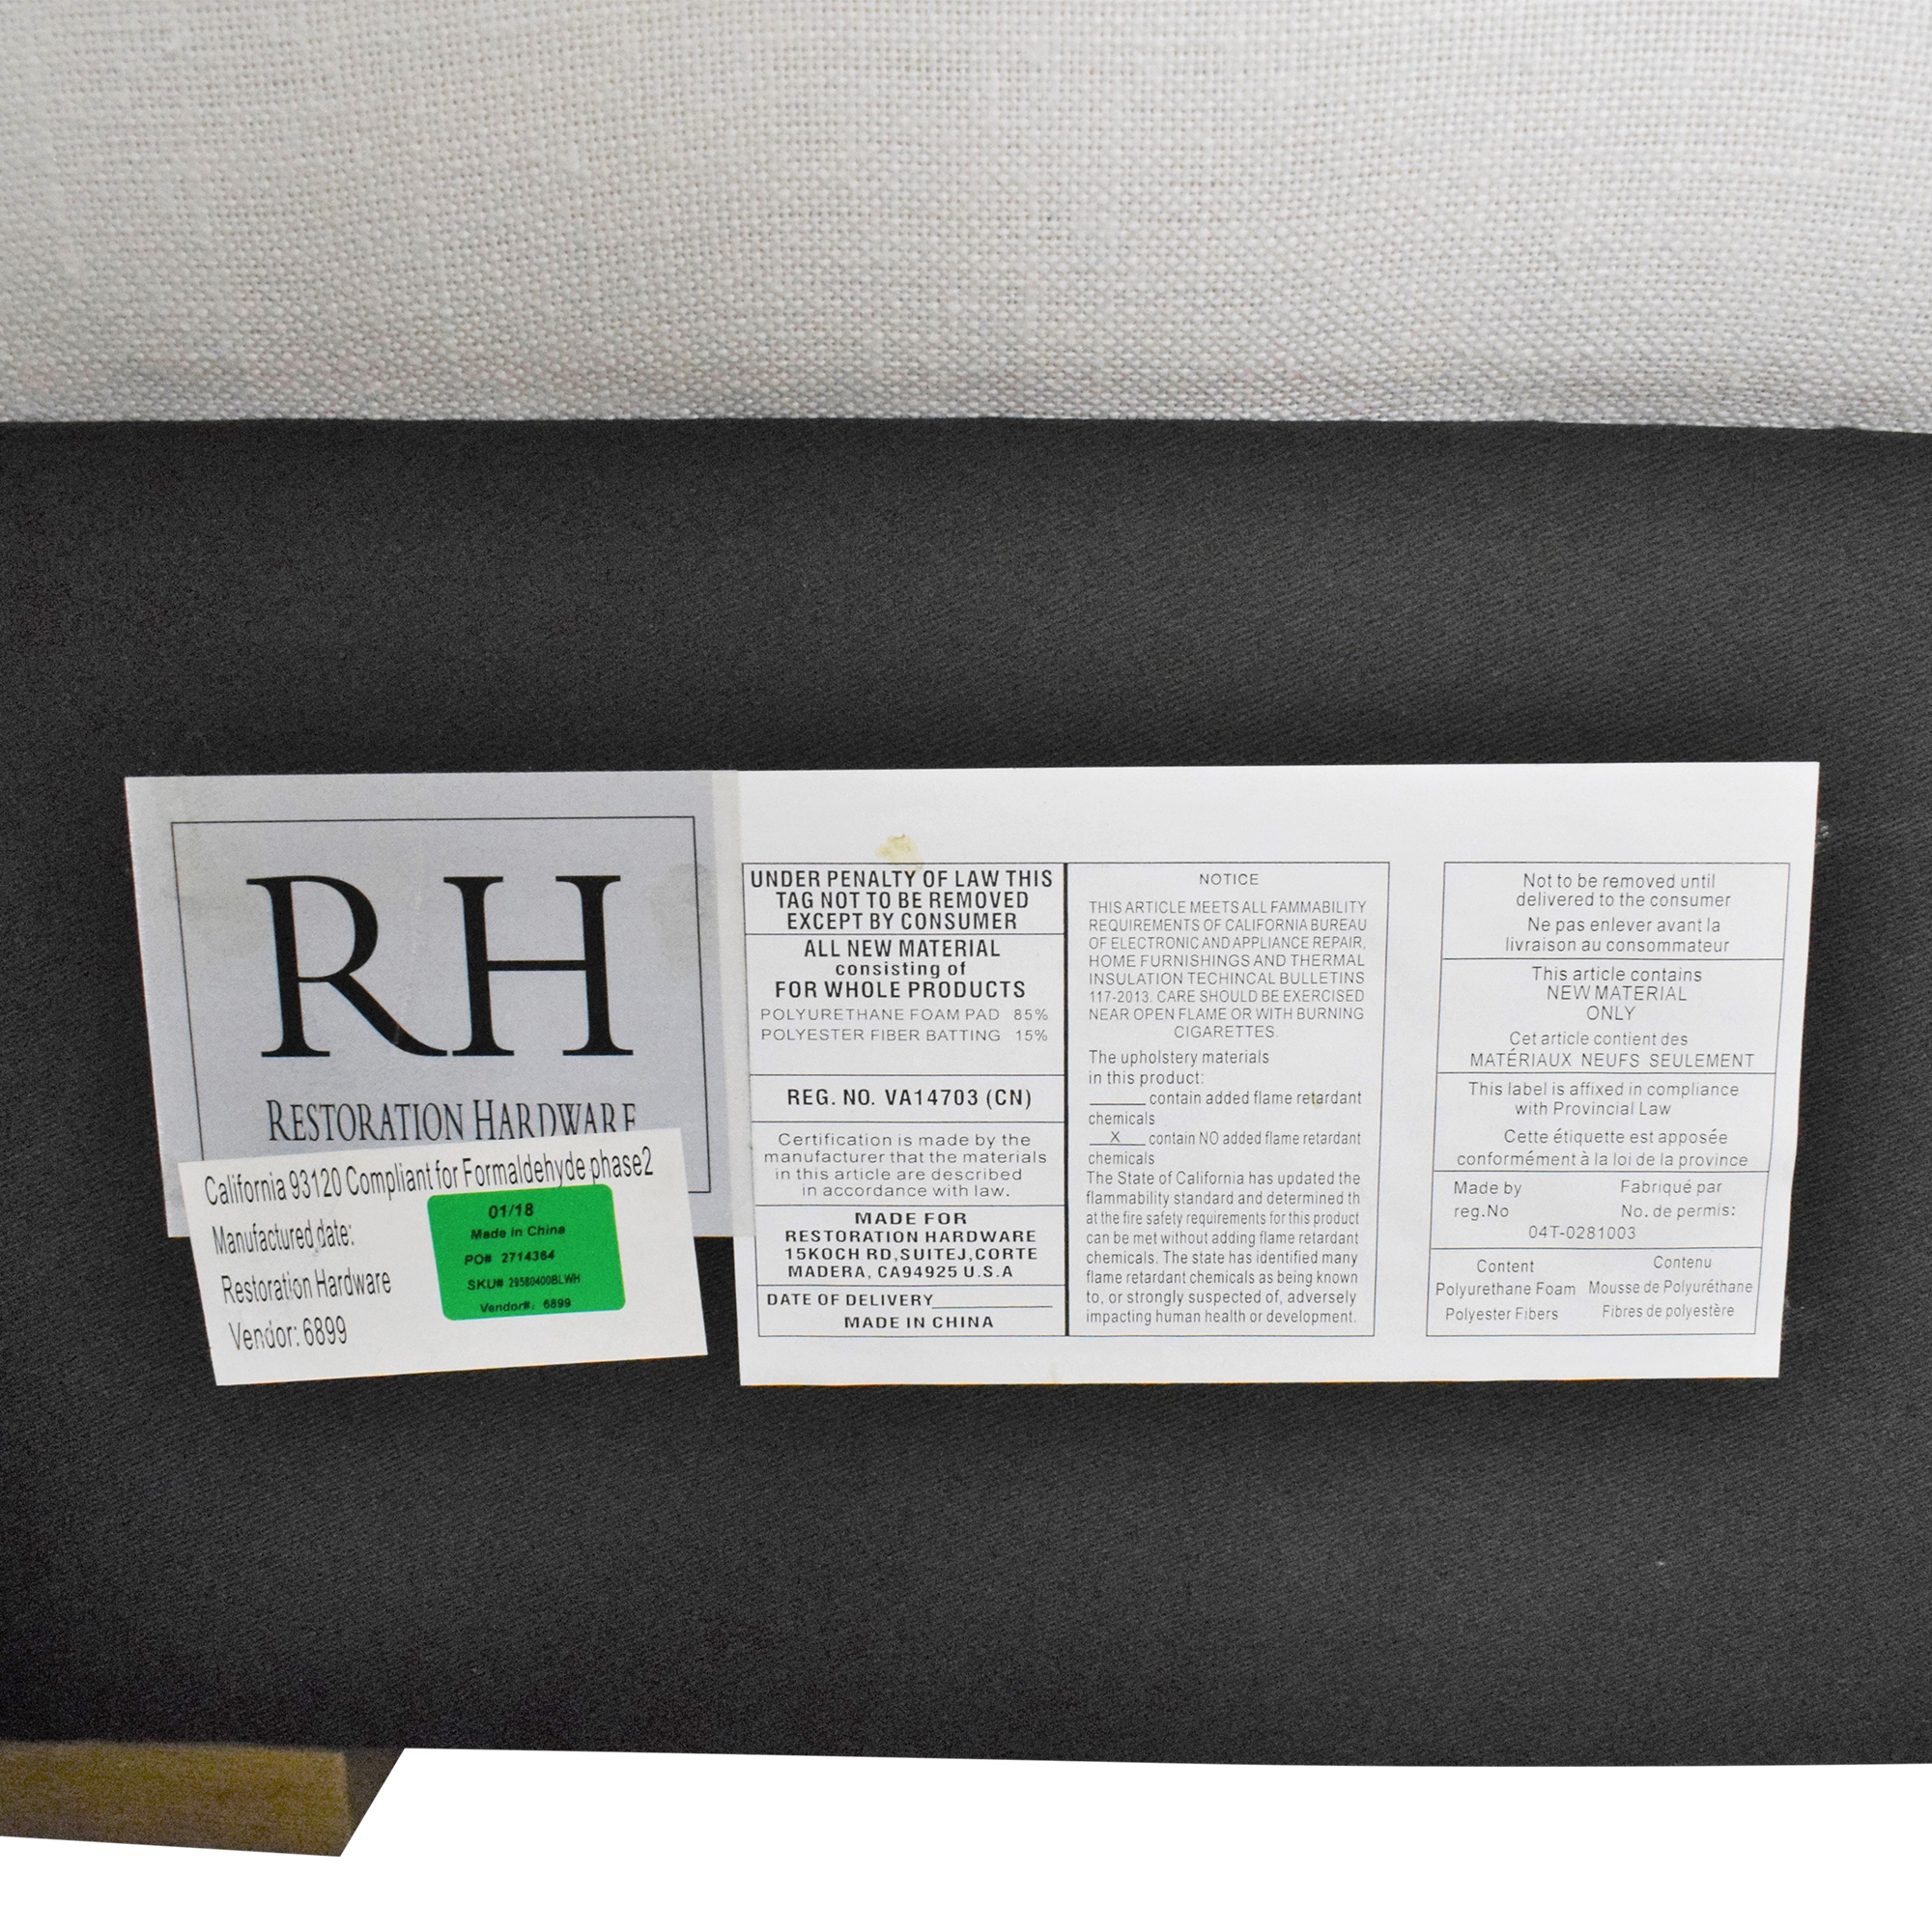 Restoration Hardware Restoration Hardware Lawson Panel Nontufted Fabric Bed white